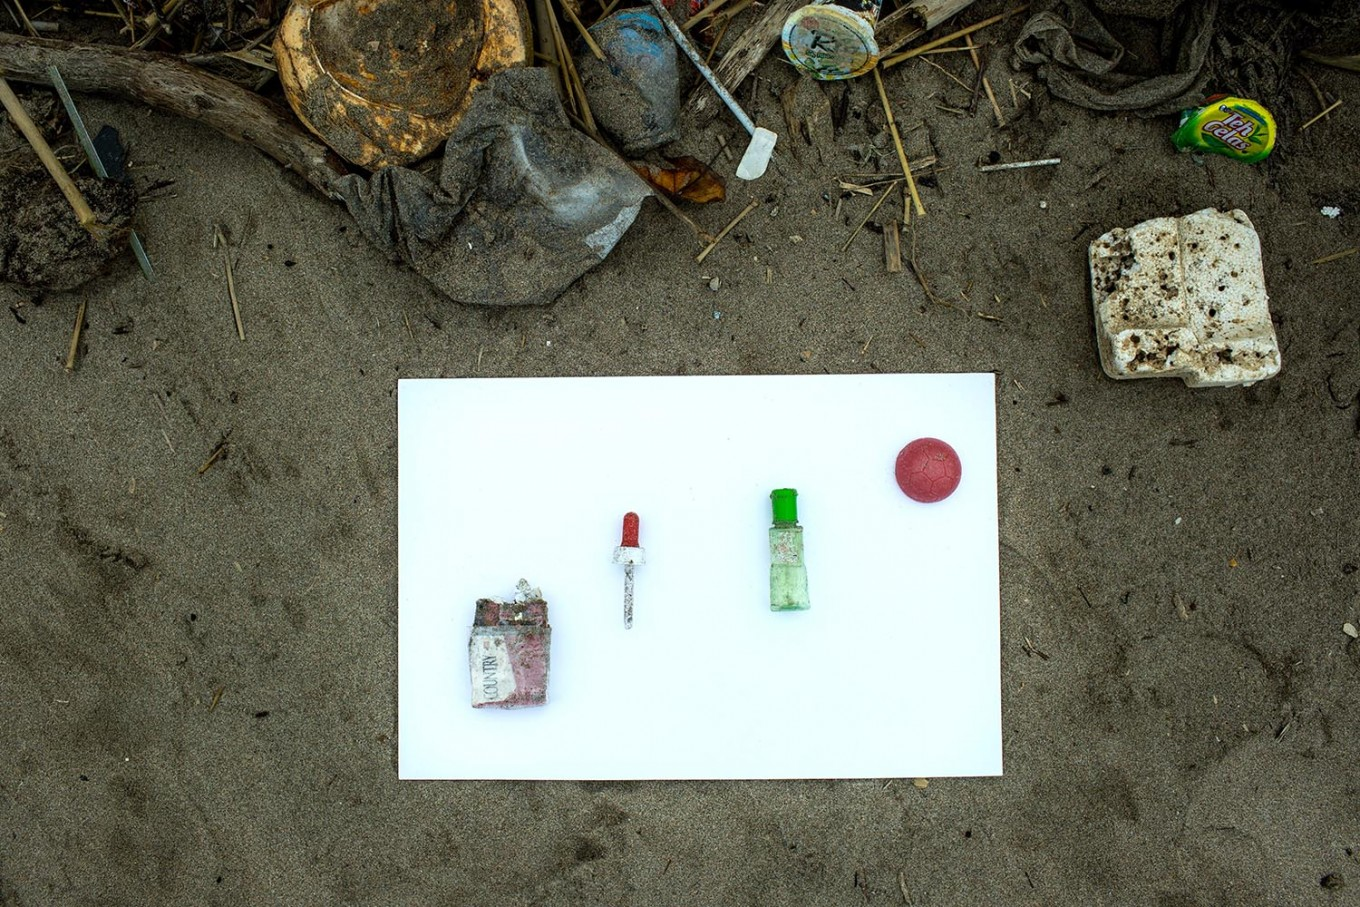 Strange bedfellows: A cigarette, a bottle of medicine, a pipette and a plastic ball collected on Kuta Beach. JP/Agung Parameswara.